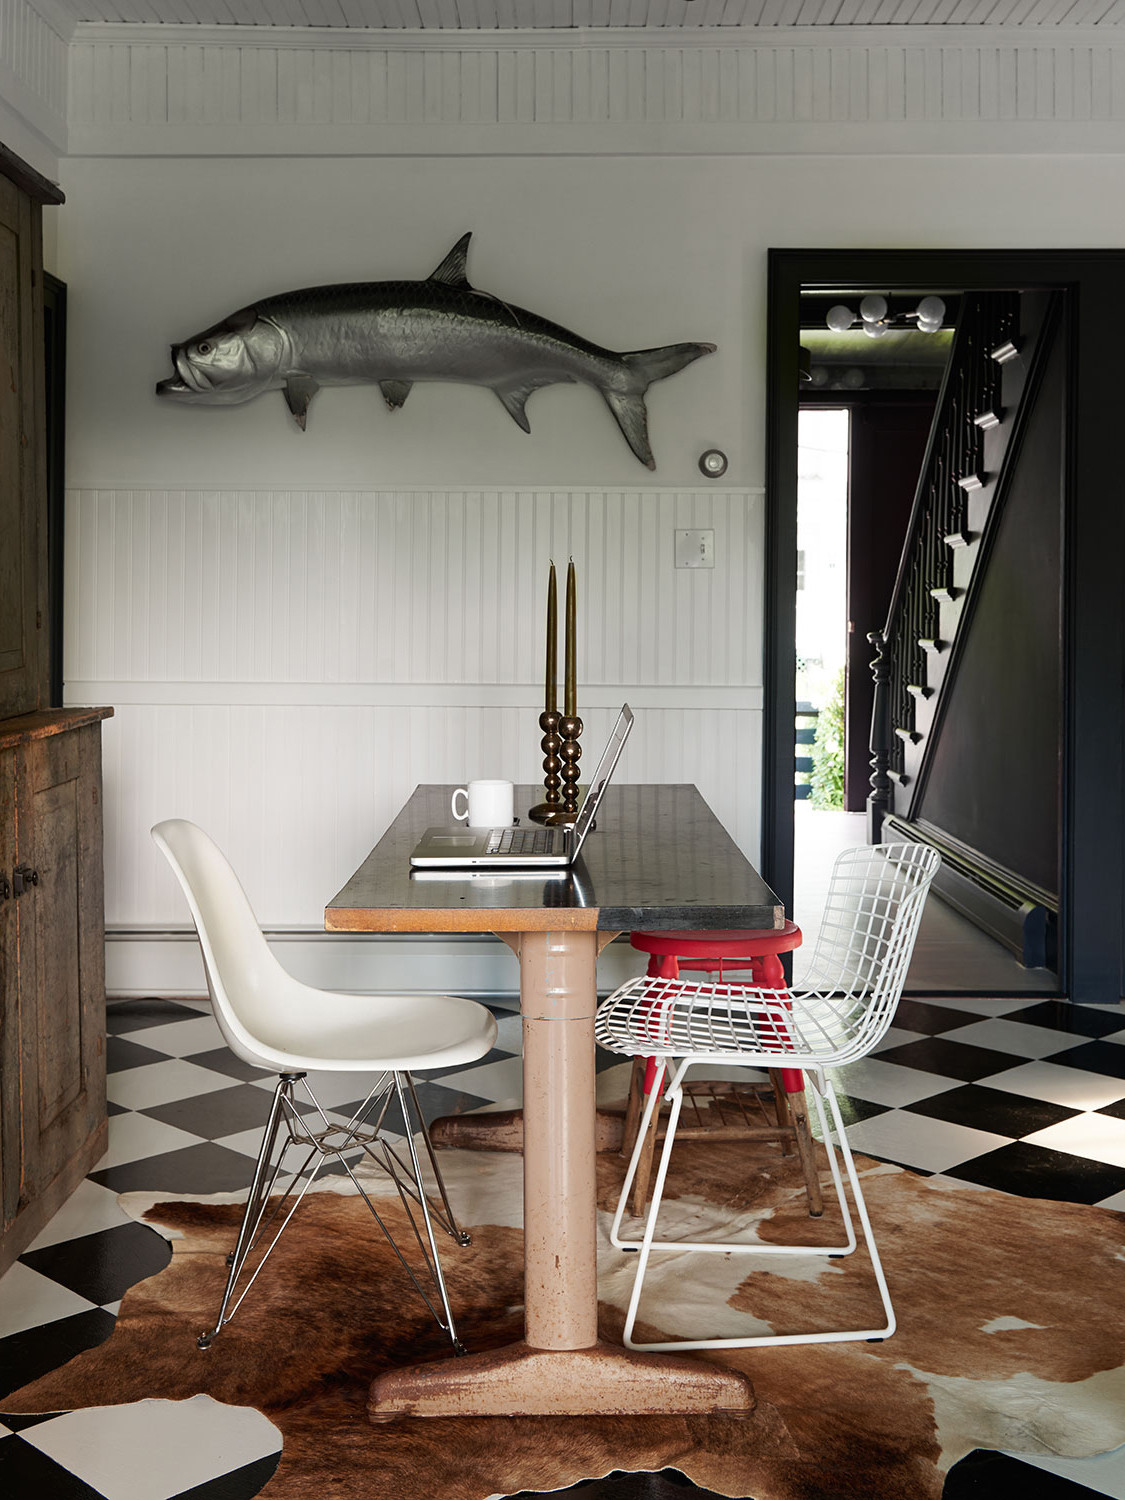 A massive mounted fish watches over a dining area.